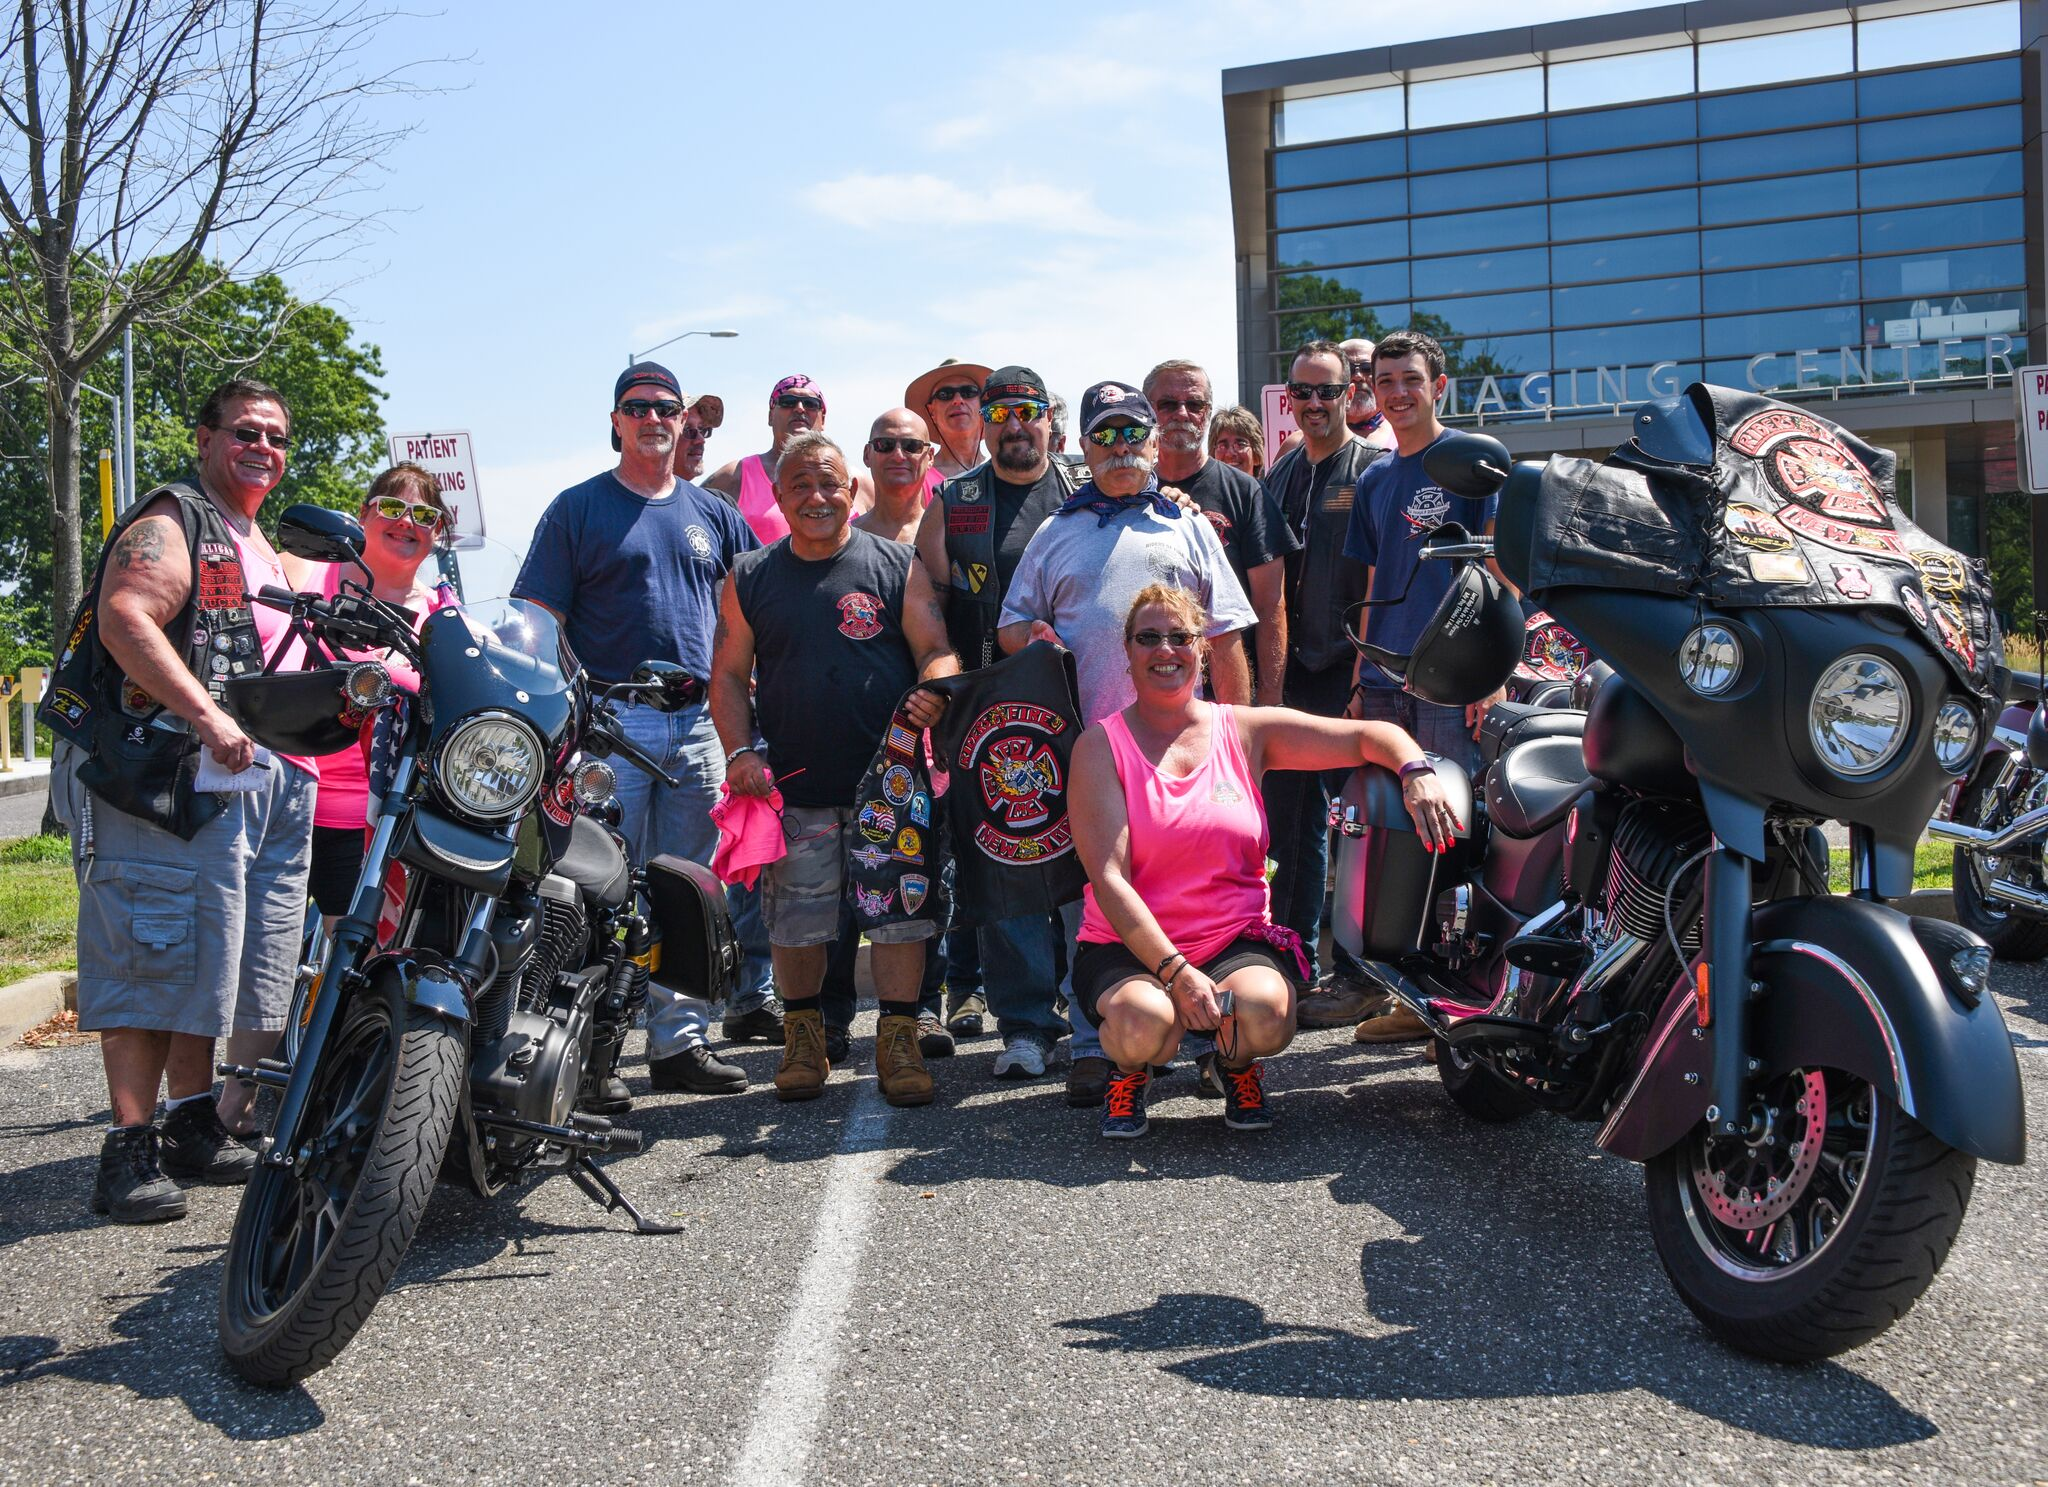 Riders of Fire, a motorcycle club of volunteer firefighters based out of Long Island, get ready for the run at Stony Brook University Cancer Center. Photo credit: Mac Titmus